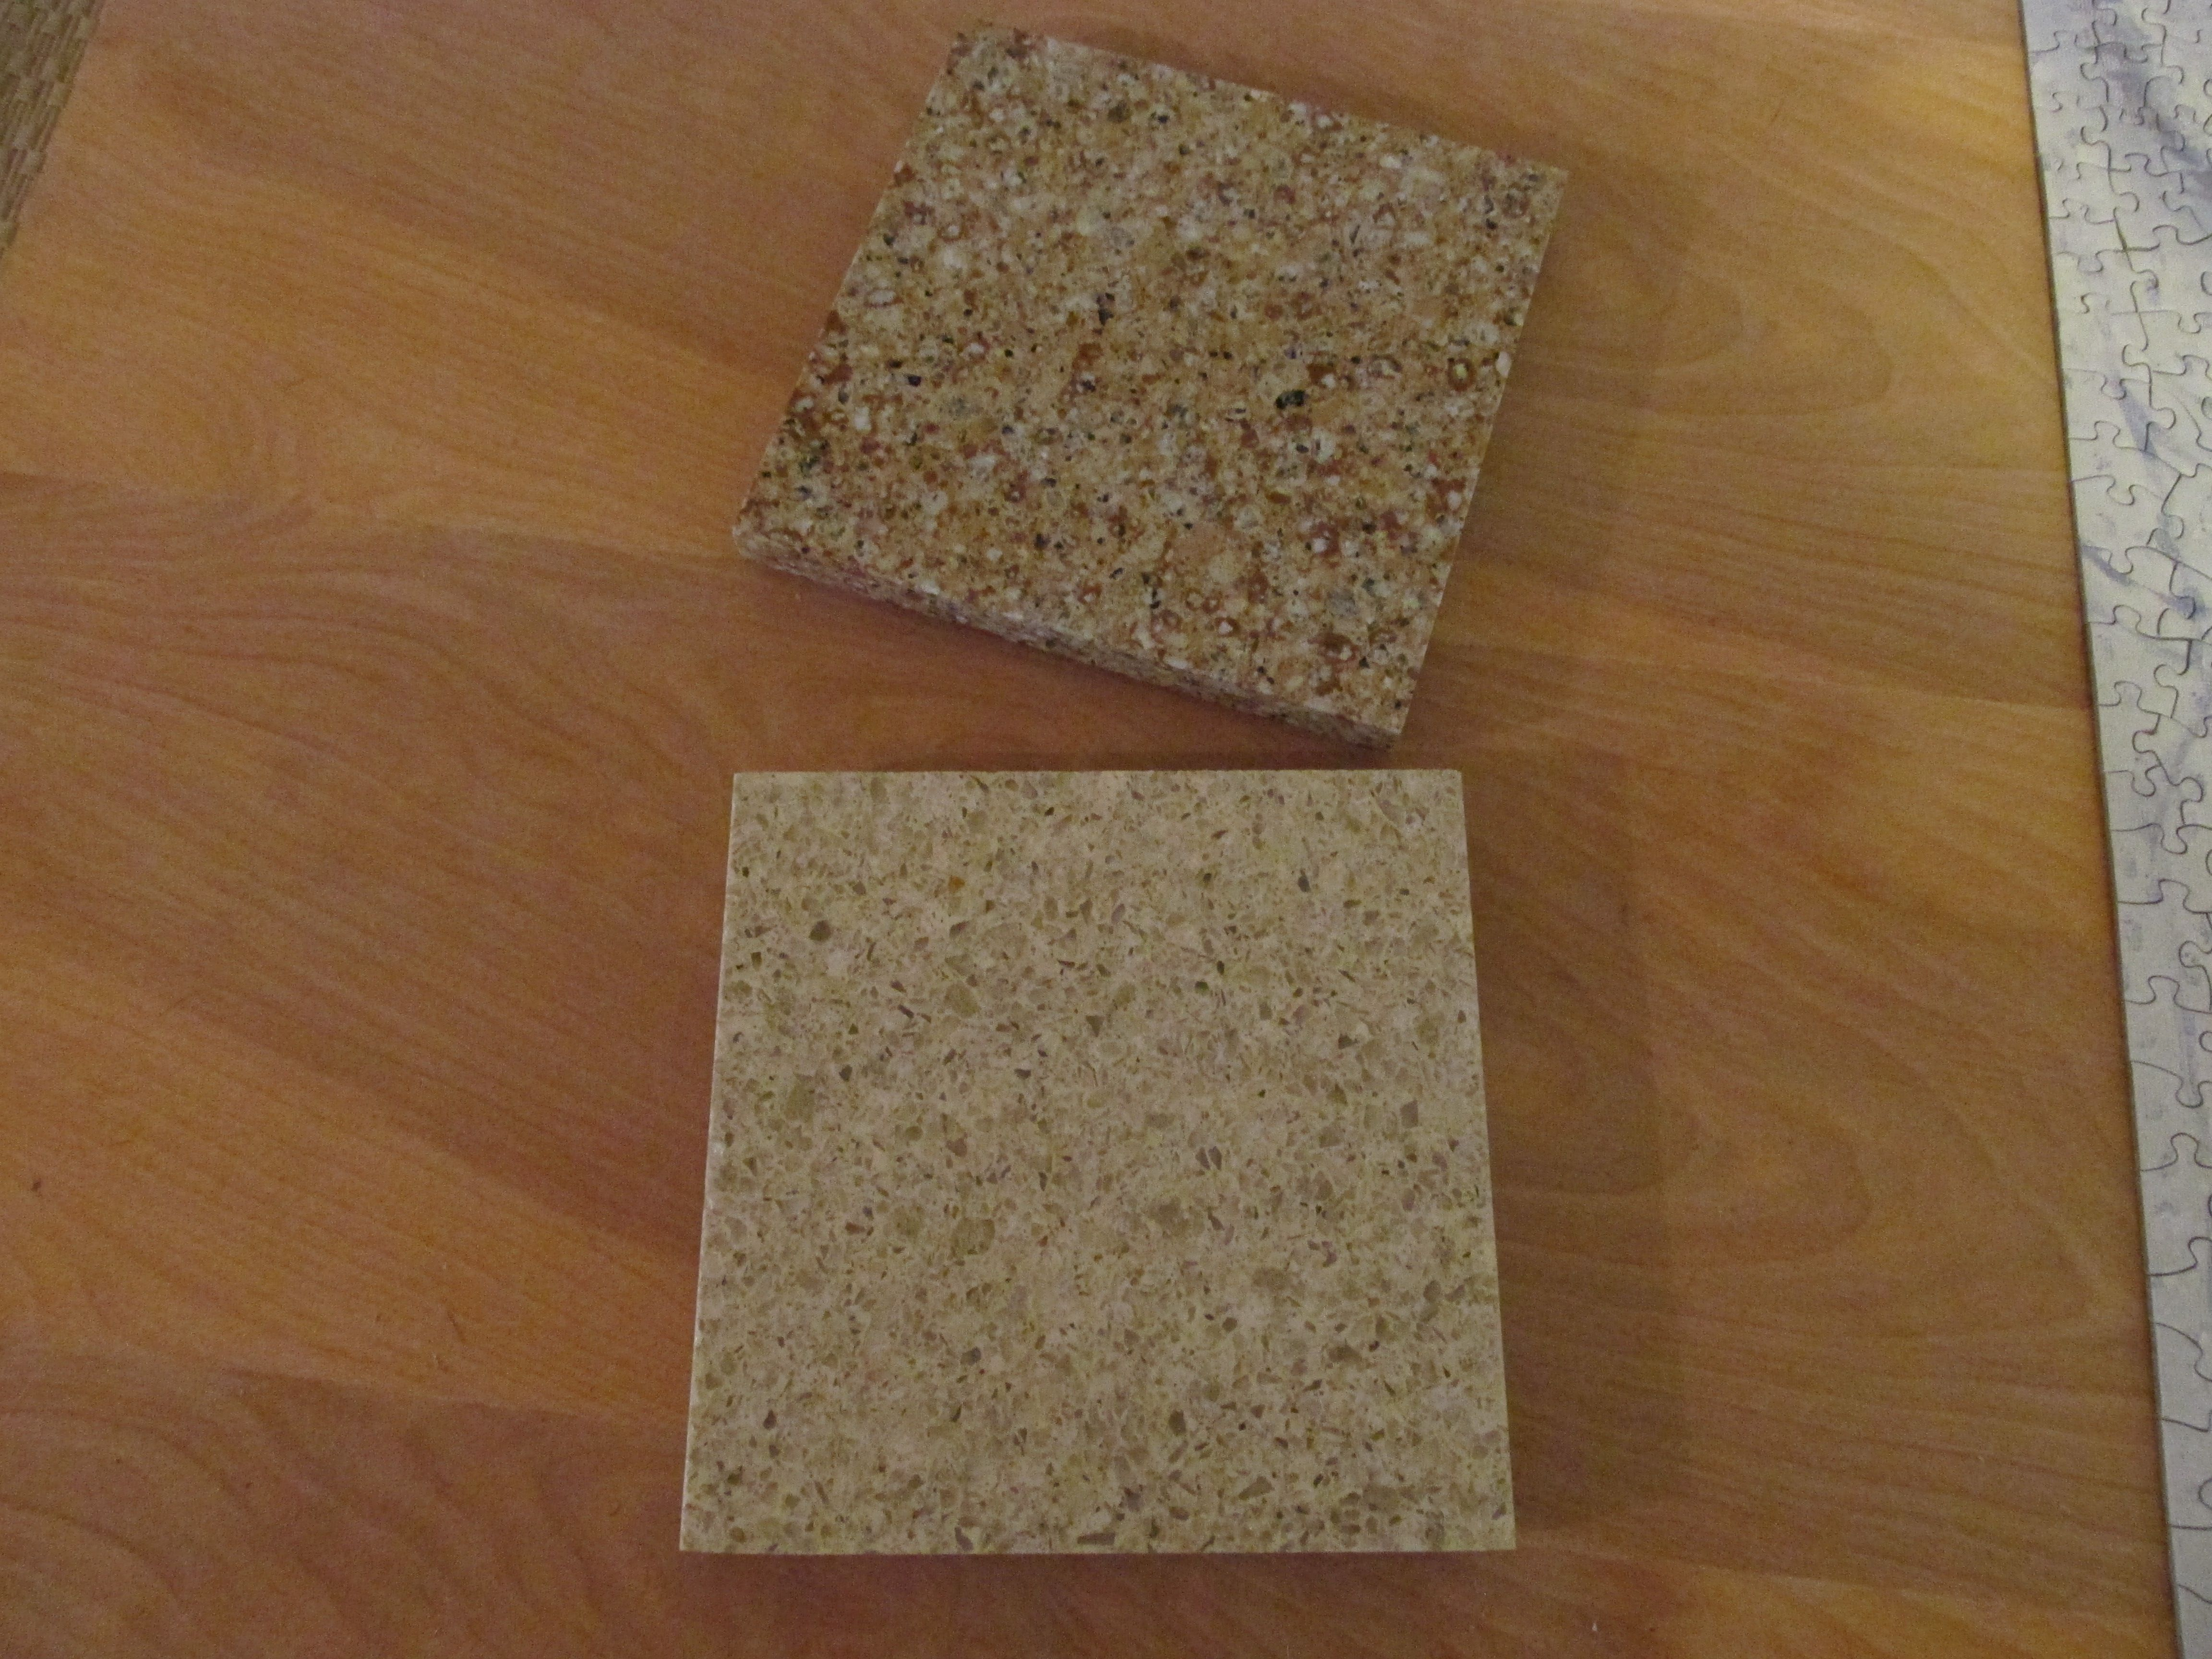 Amazing Repurposed Solid Surface Quartz Countertop Material, Remade Into Great  Trivets!! They Are Heat